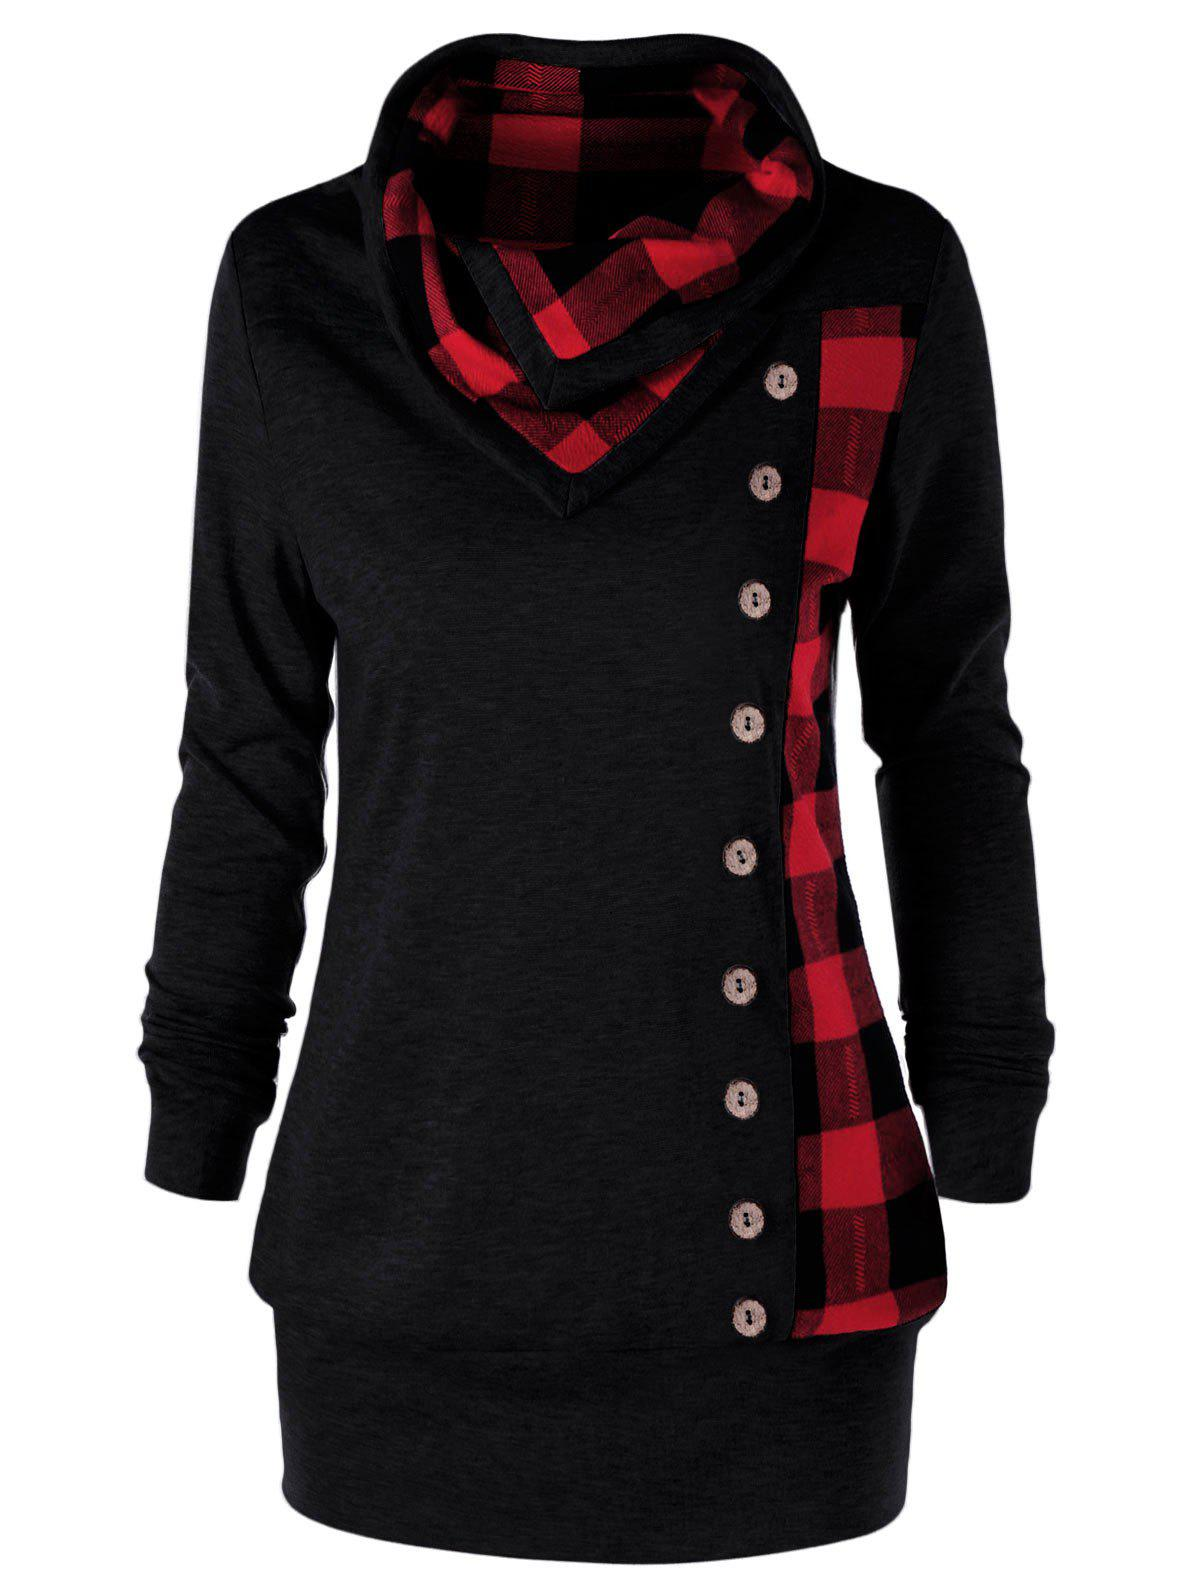 Plus Size Cowl Neck Plaid Sweatshirt